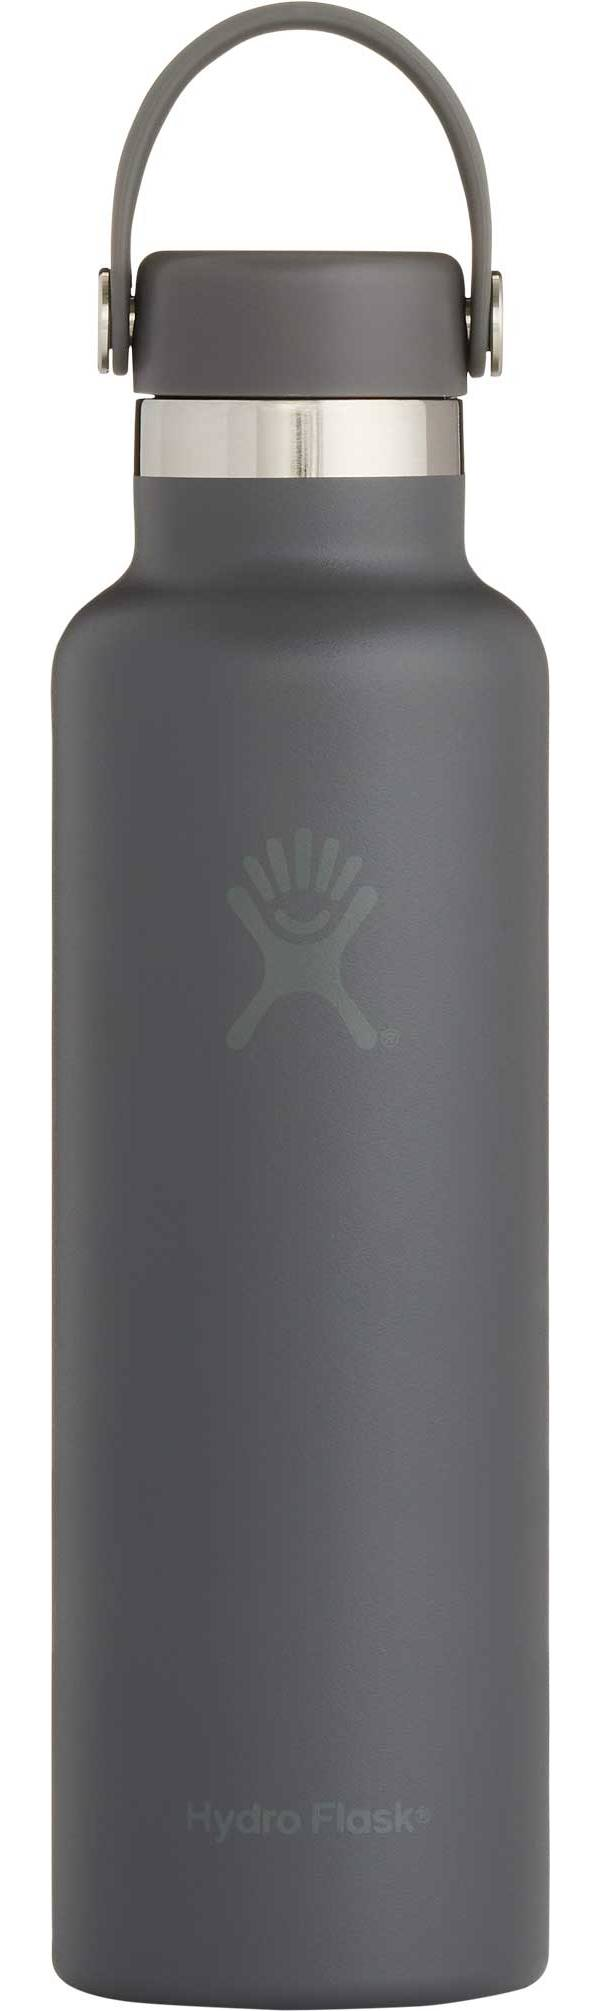 Hydro Flask Skyline Series 21 oz. Standard Mouth Bottle product image